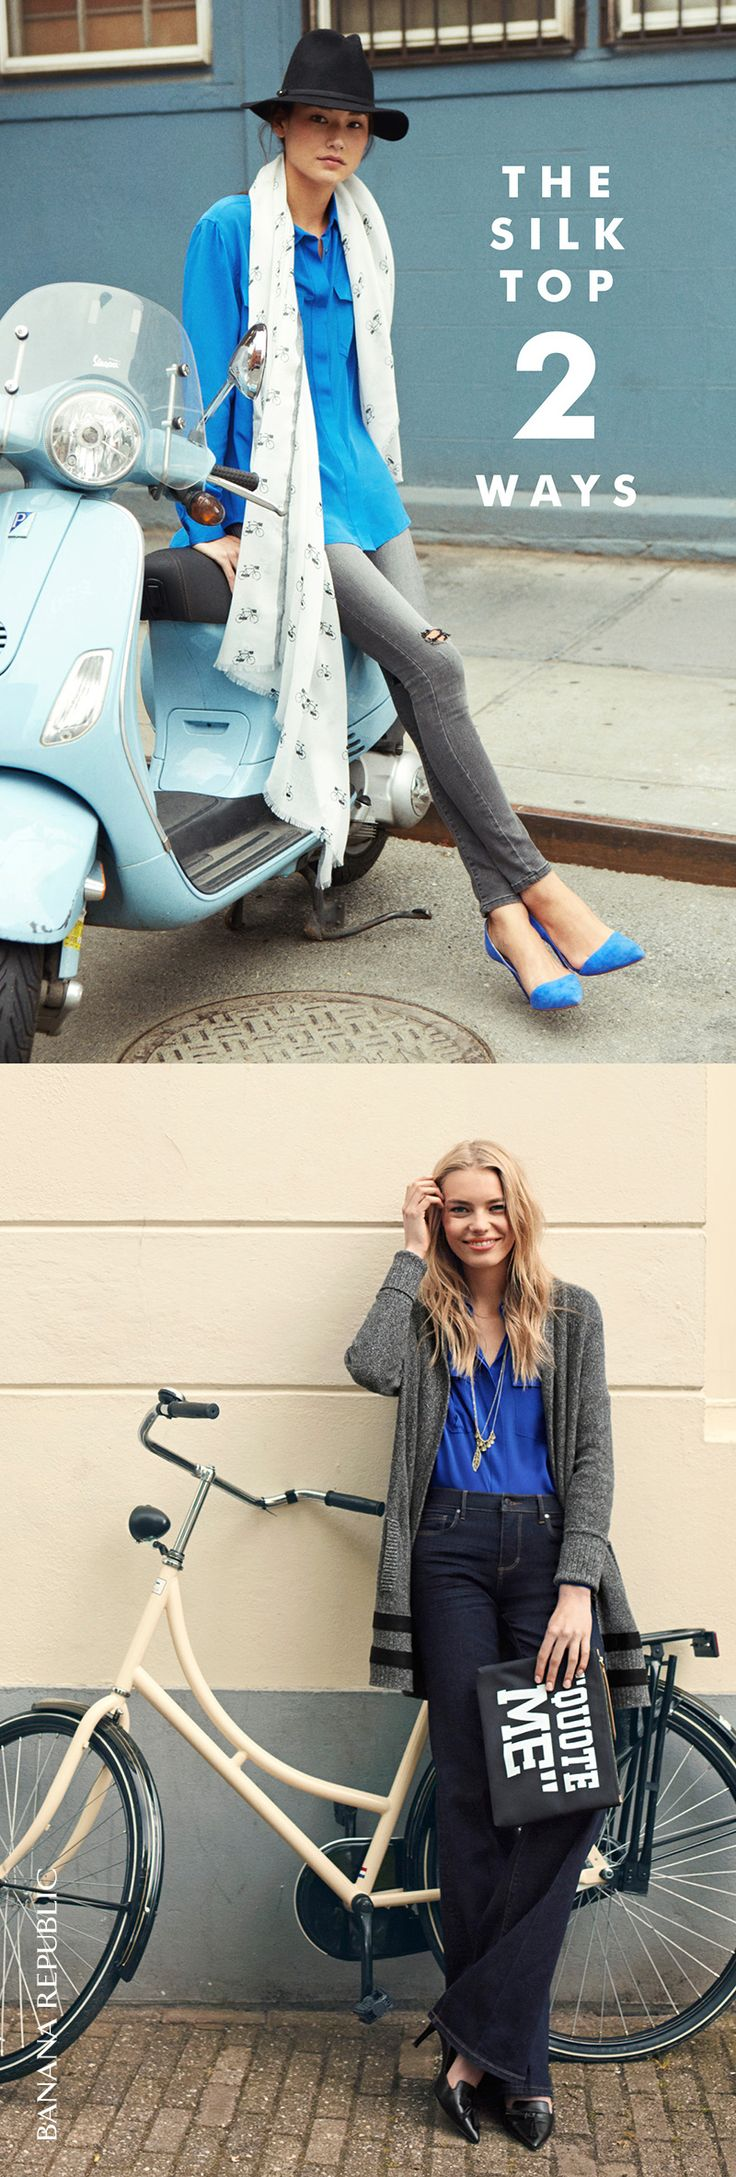 A soft and silky wardrobe staple looks better in an amazing shade of cobalt blue. As happy with distressed skinny jeans or tucked into denim flares. It really is all about this color.